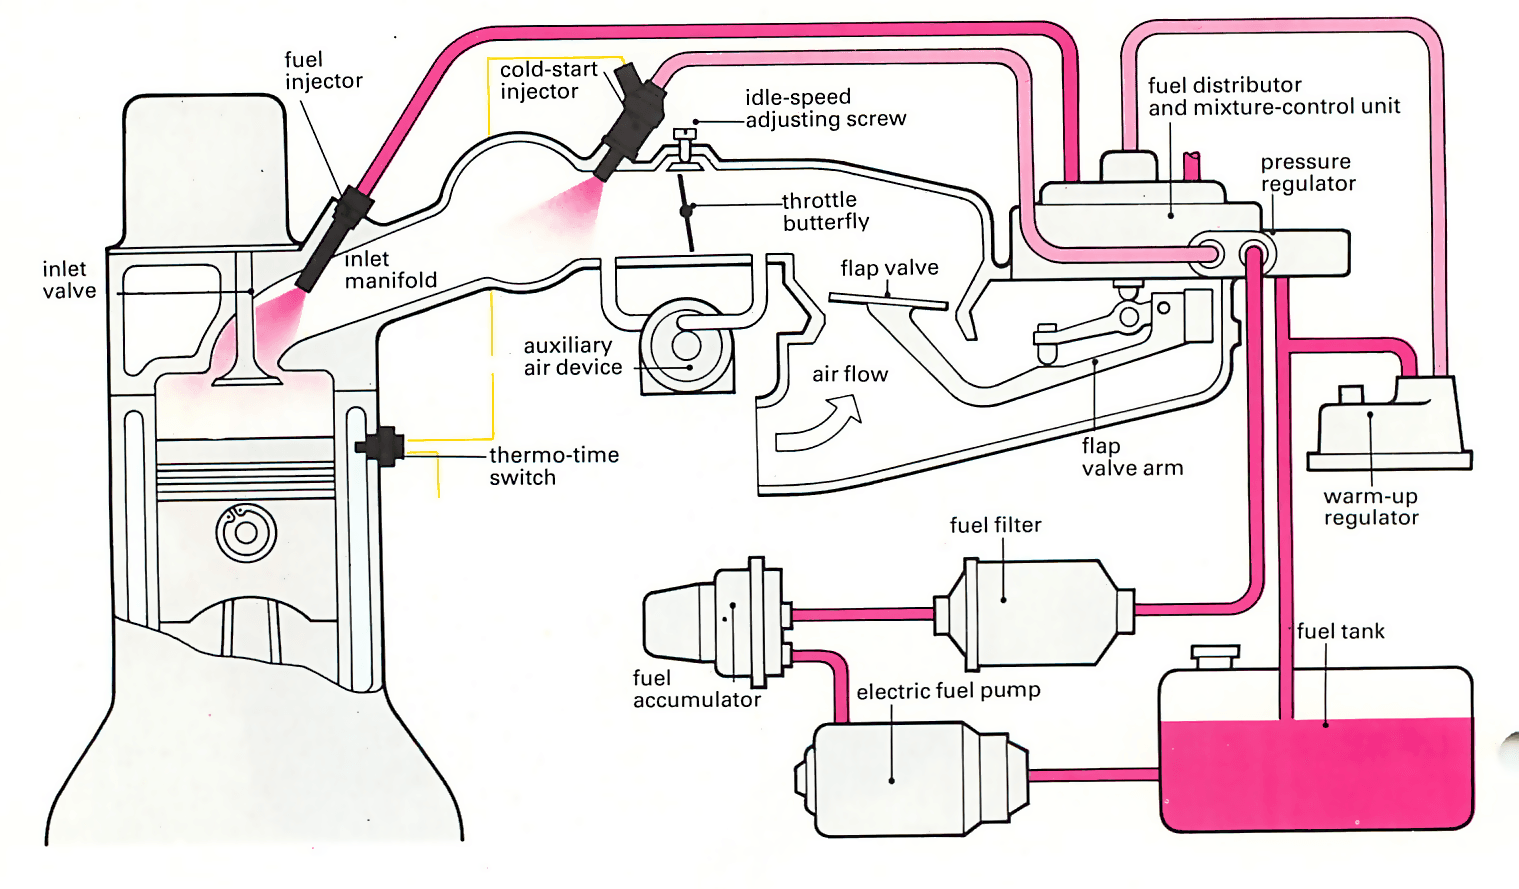 Car Wiring Schematic Custom Project Diagram Club Fuel Pump Lucas Mechanical Injection System 1997 How To Read Schematics